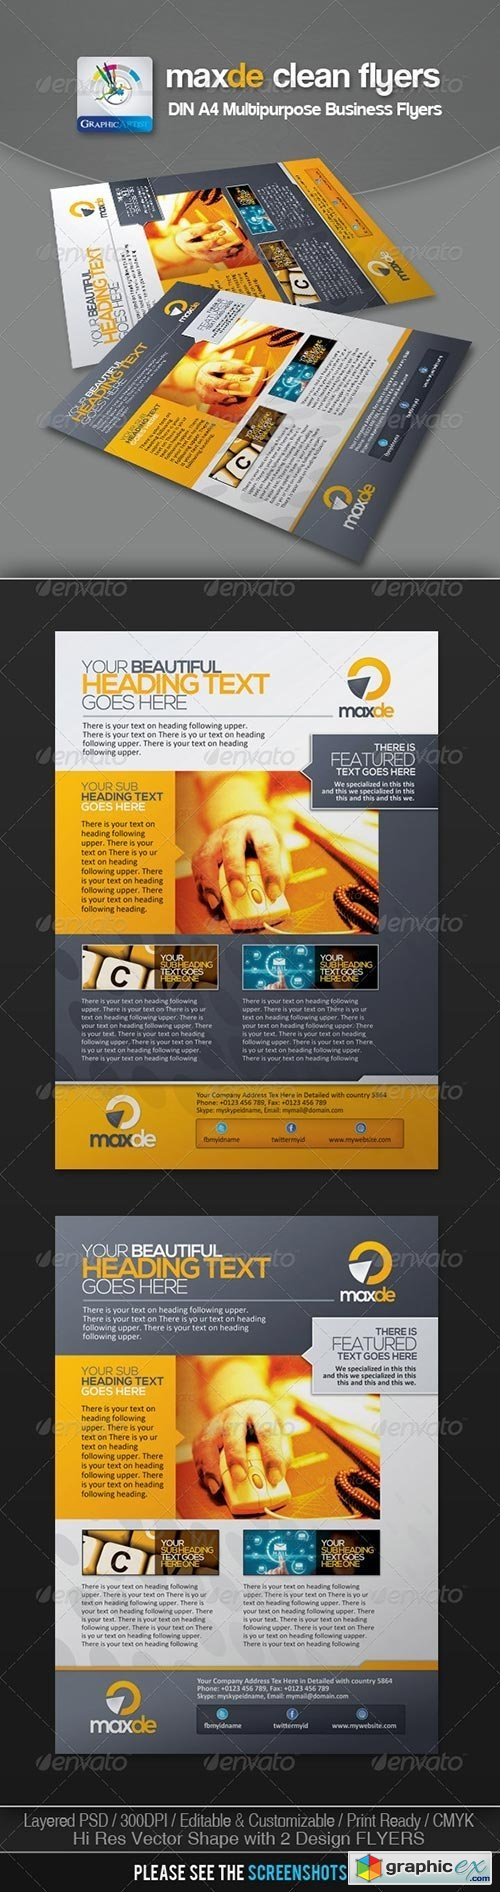 Maxde Clean Business Flyer/Ads 3072963